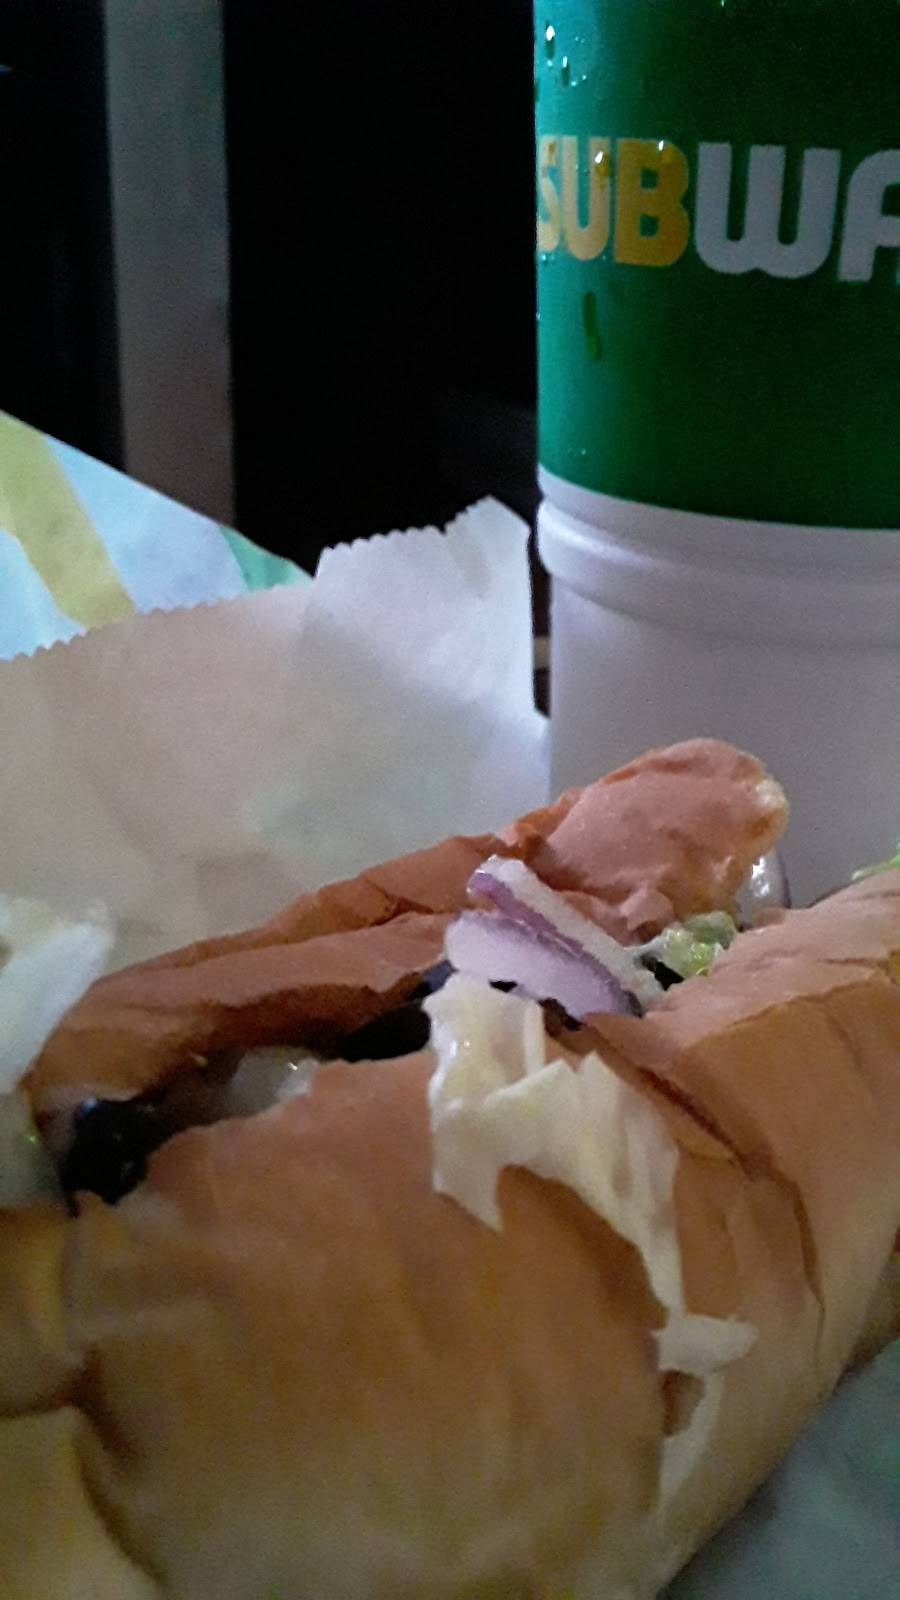 Subway - meal takeaway  | Photo 2 of 2 | Address: 3001 Goodman Rd Unit A, Horn Lake, MS 38637, USA | Phone: (662) 342-4490